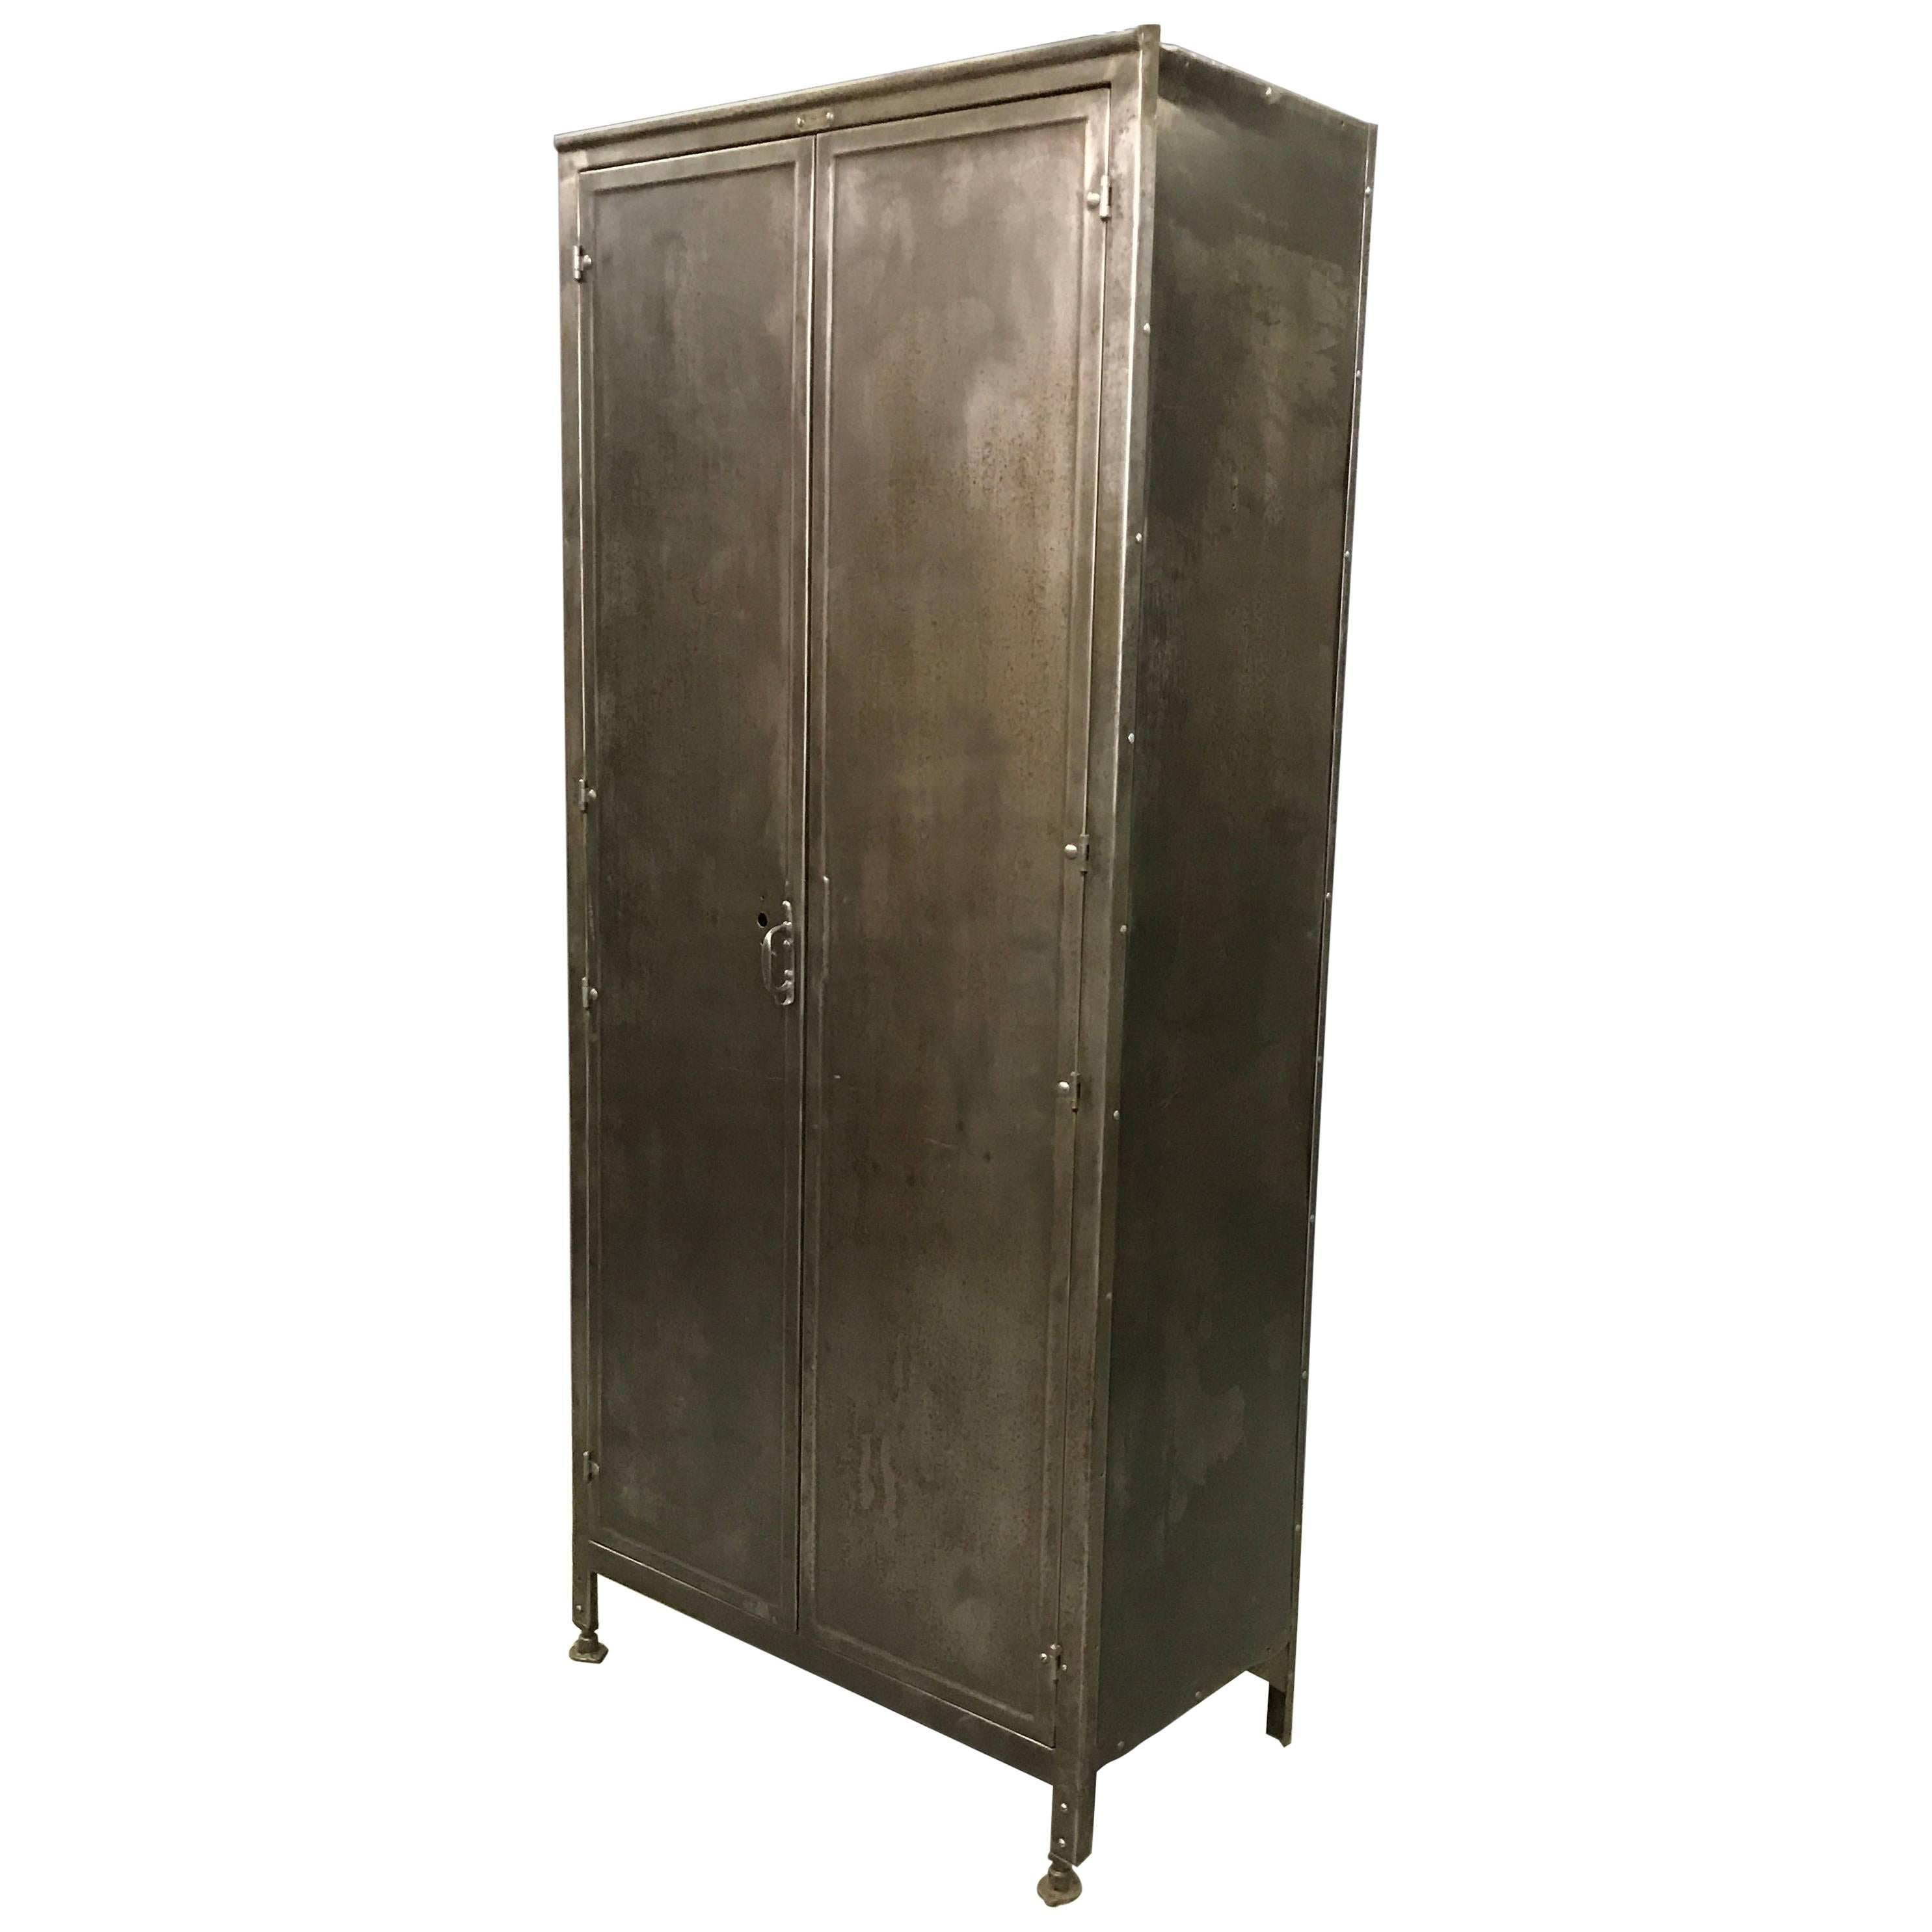 Industrial Double Door Brushed Steel Medart Steelbilt Armoire Wardrobe  Cabinet For Sale